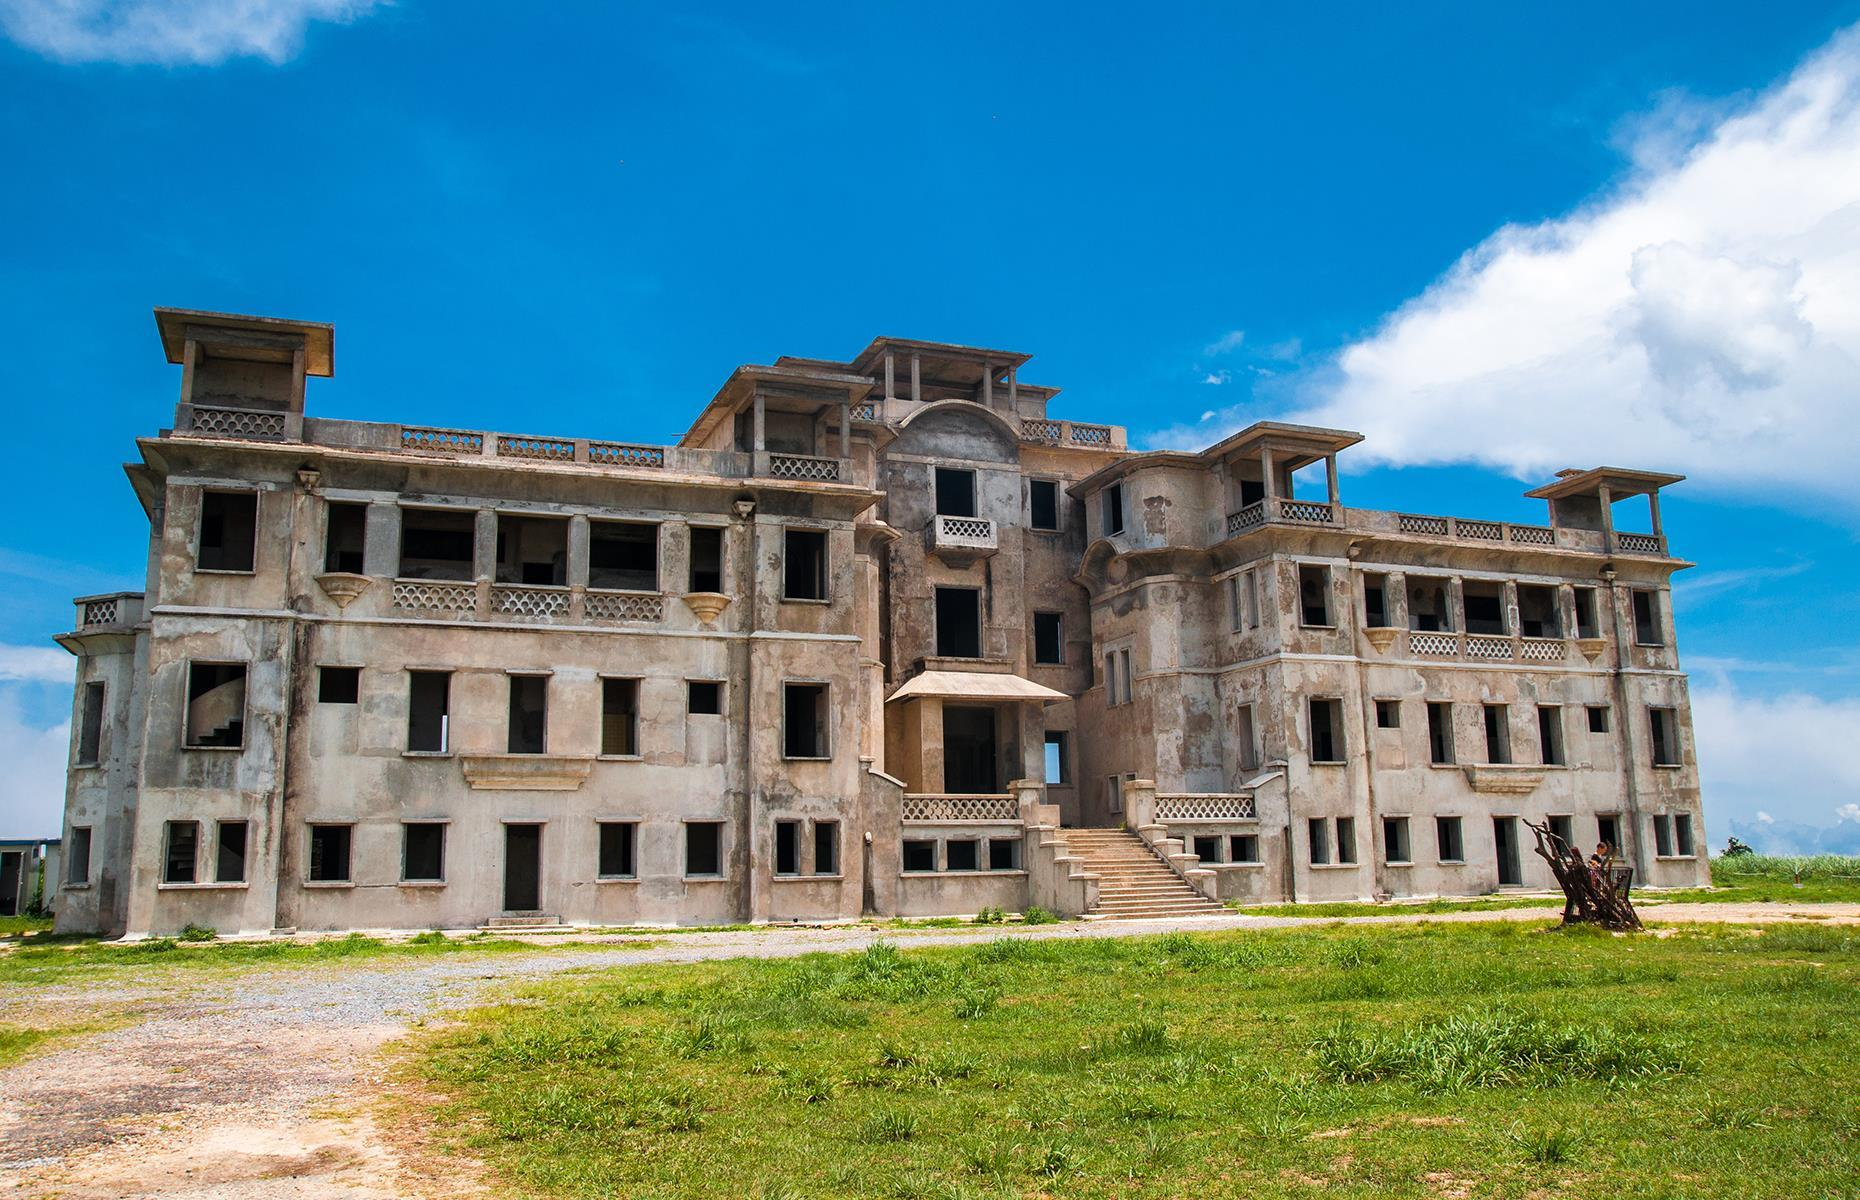 Slide 15 of 70: One of the buildings in the resort known as Bokor Hill Station, the Bokor Palace was built as a mountain retreat for Europeans in the early 1920s, when Cambodia was under French rule.